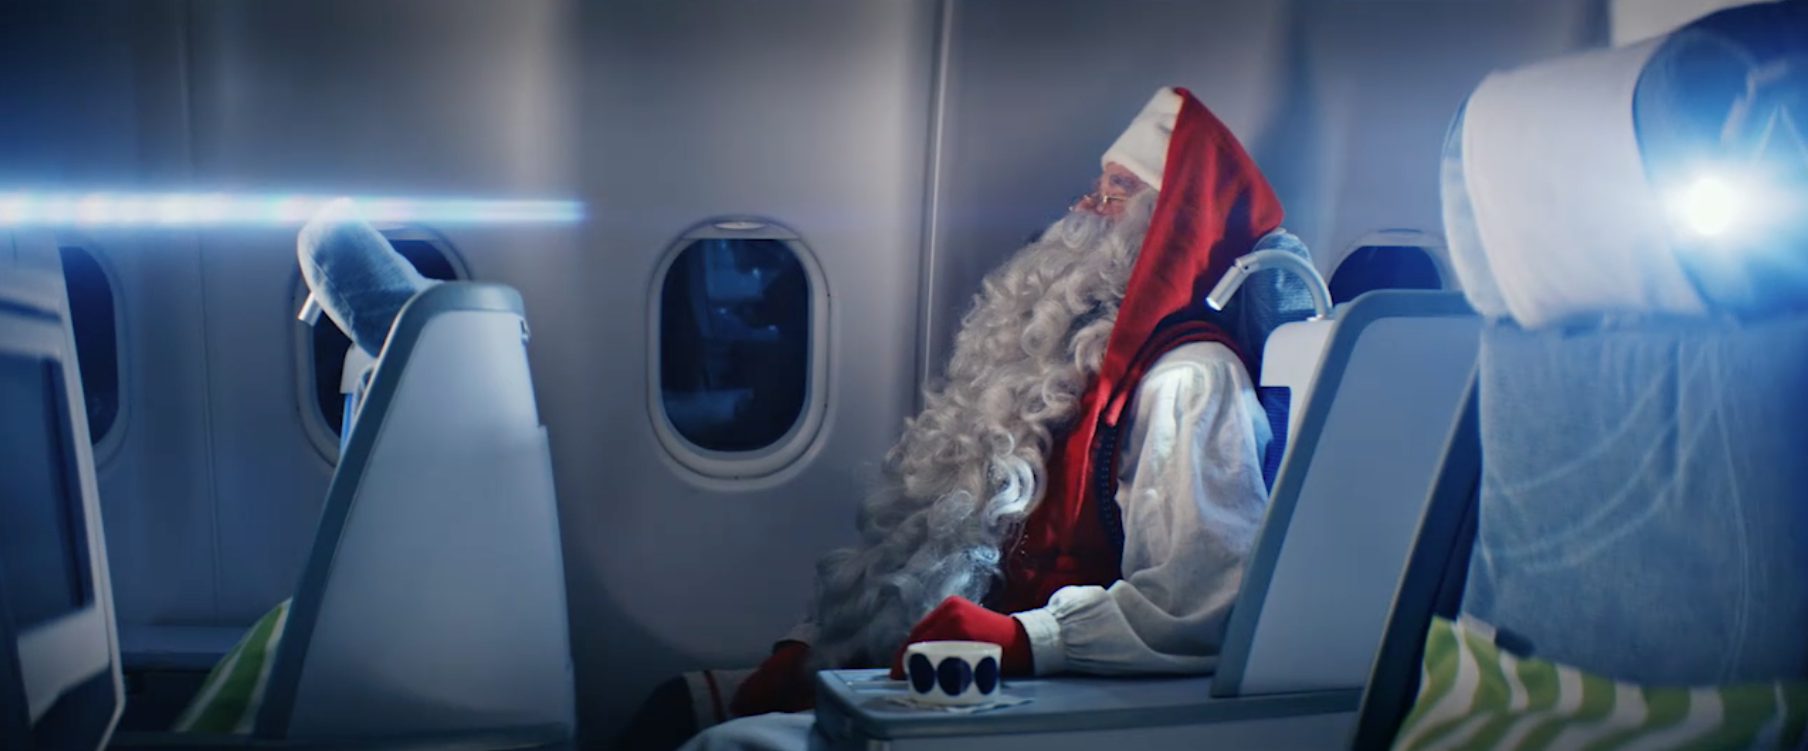 Header Santa Claus Christmas for airlines